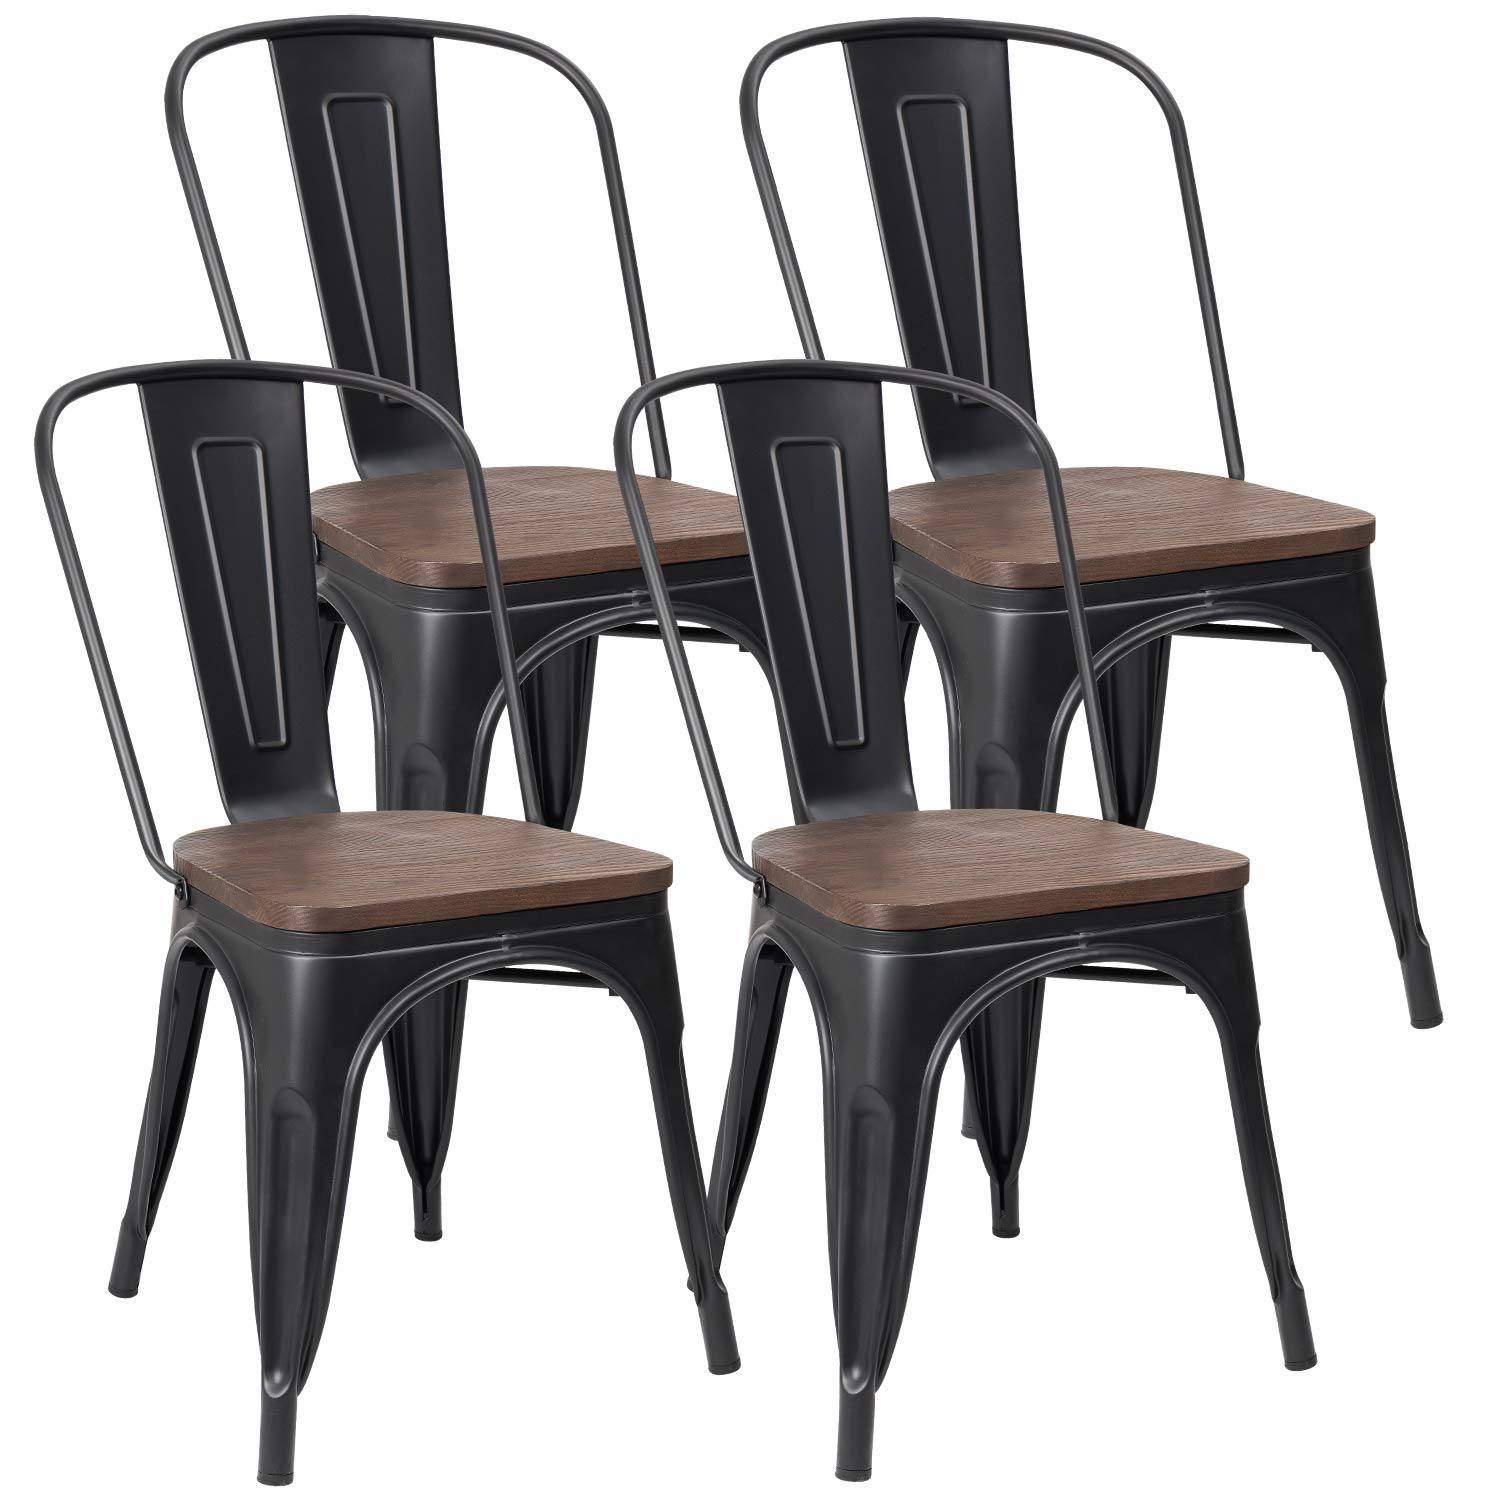 JUMMICO Metal Dining Chair Stackable Industrial Vintage Kitchen Chairs Indoor-Outdoor Bistro Cafe Side Chairs with Back and Wooden Seat Set of 4 (Black) by JUMMICO